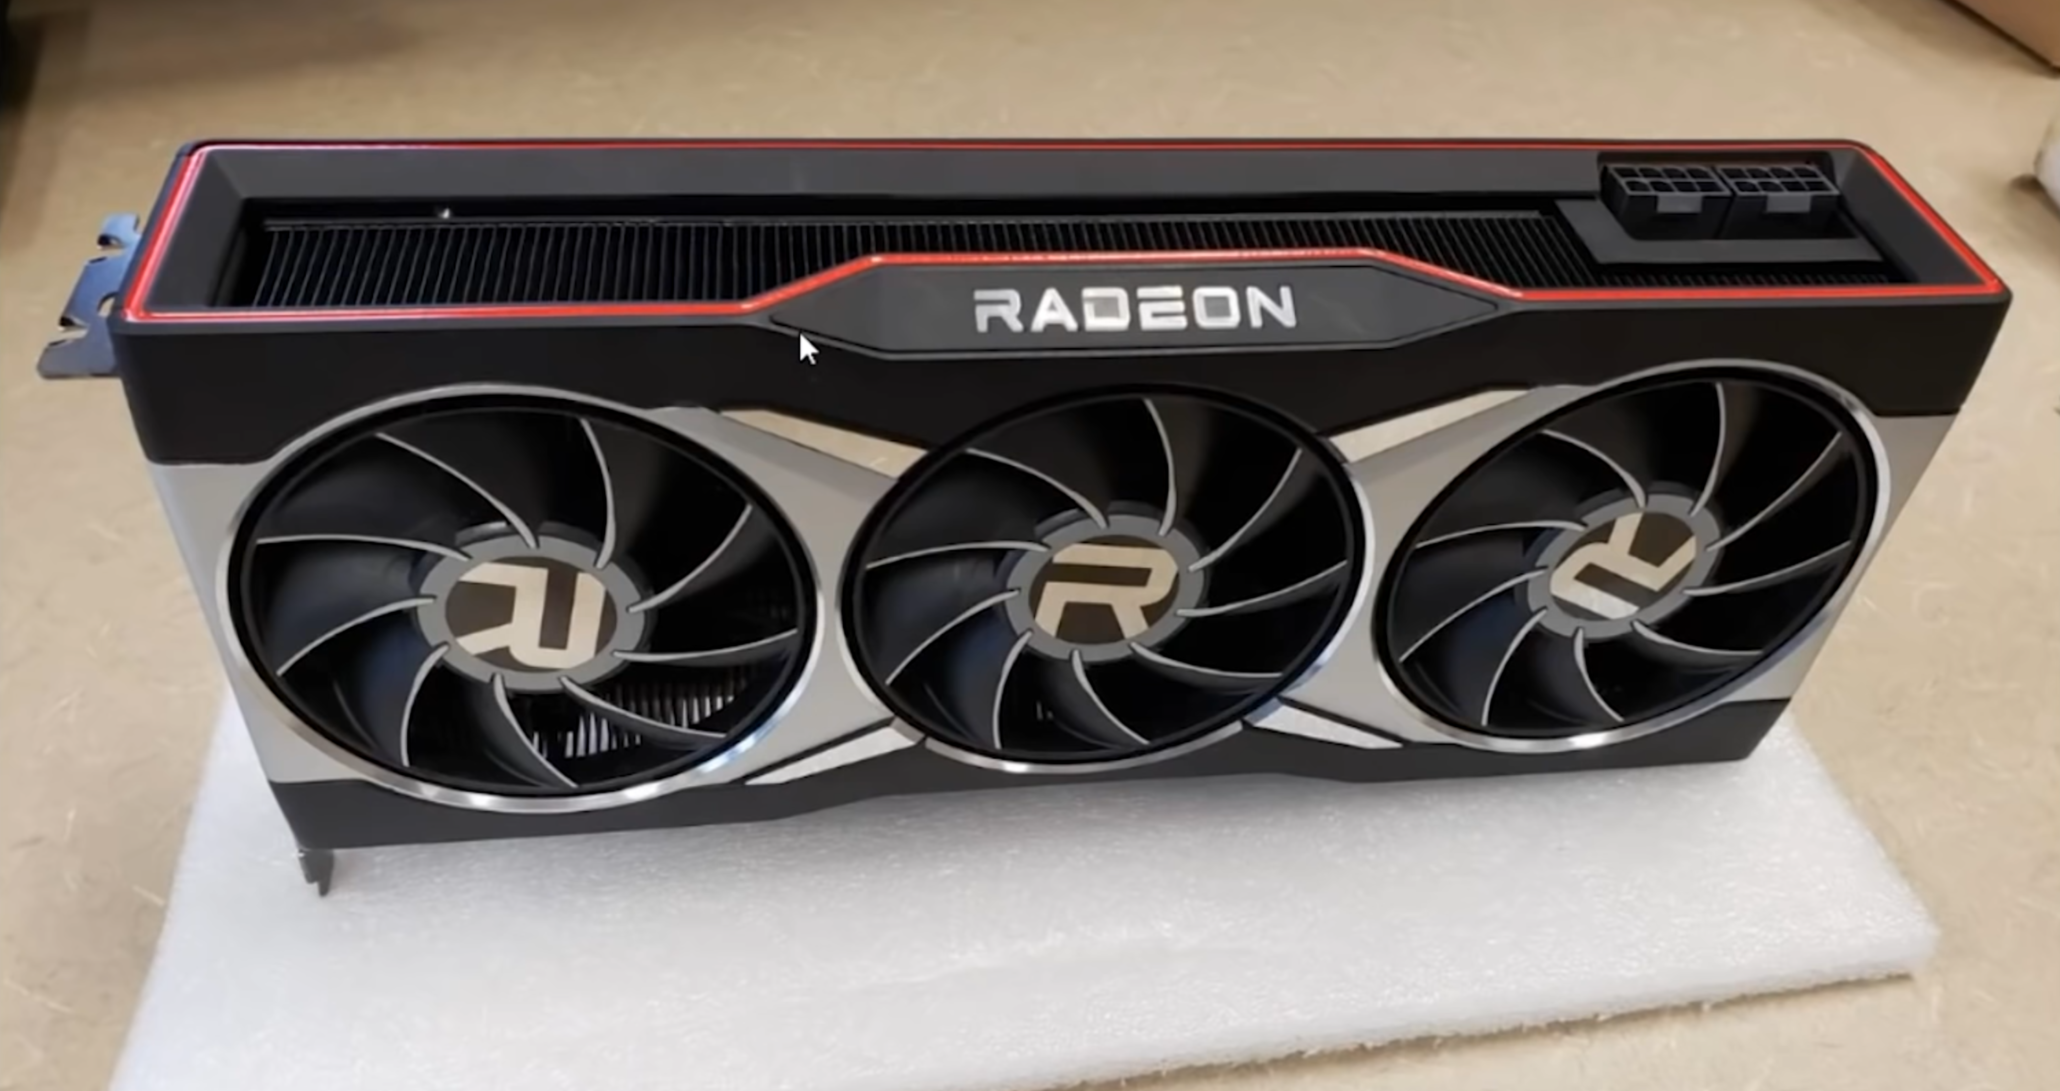 AMD Radeon RX 6000 Series Graphics Cards Pictured, Radeon RX 6900 Dengan Triple-Fan dan Radeon RX 6800 / 6700 Dengan Dual-Fan Cooling